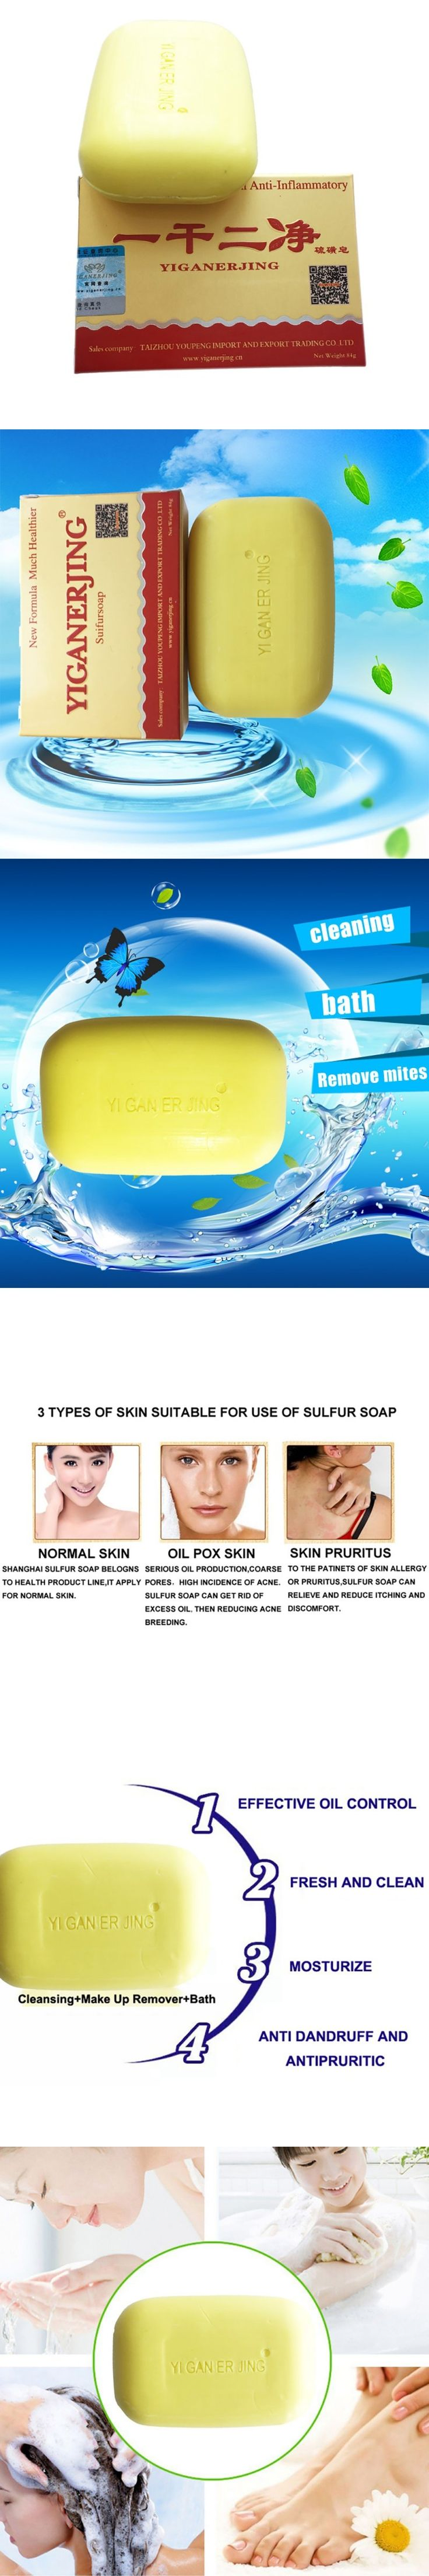 Personal Care Soap Skin & Body Beauty Healthy Care Antibacterial Deoiling Psoriasis Eczema Sulfur Soap